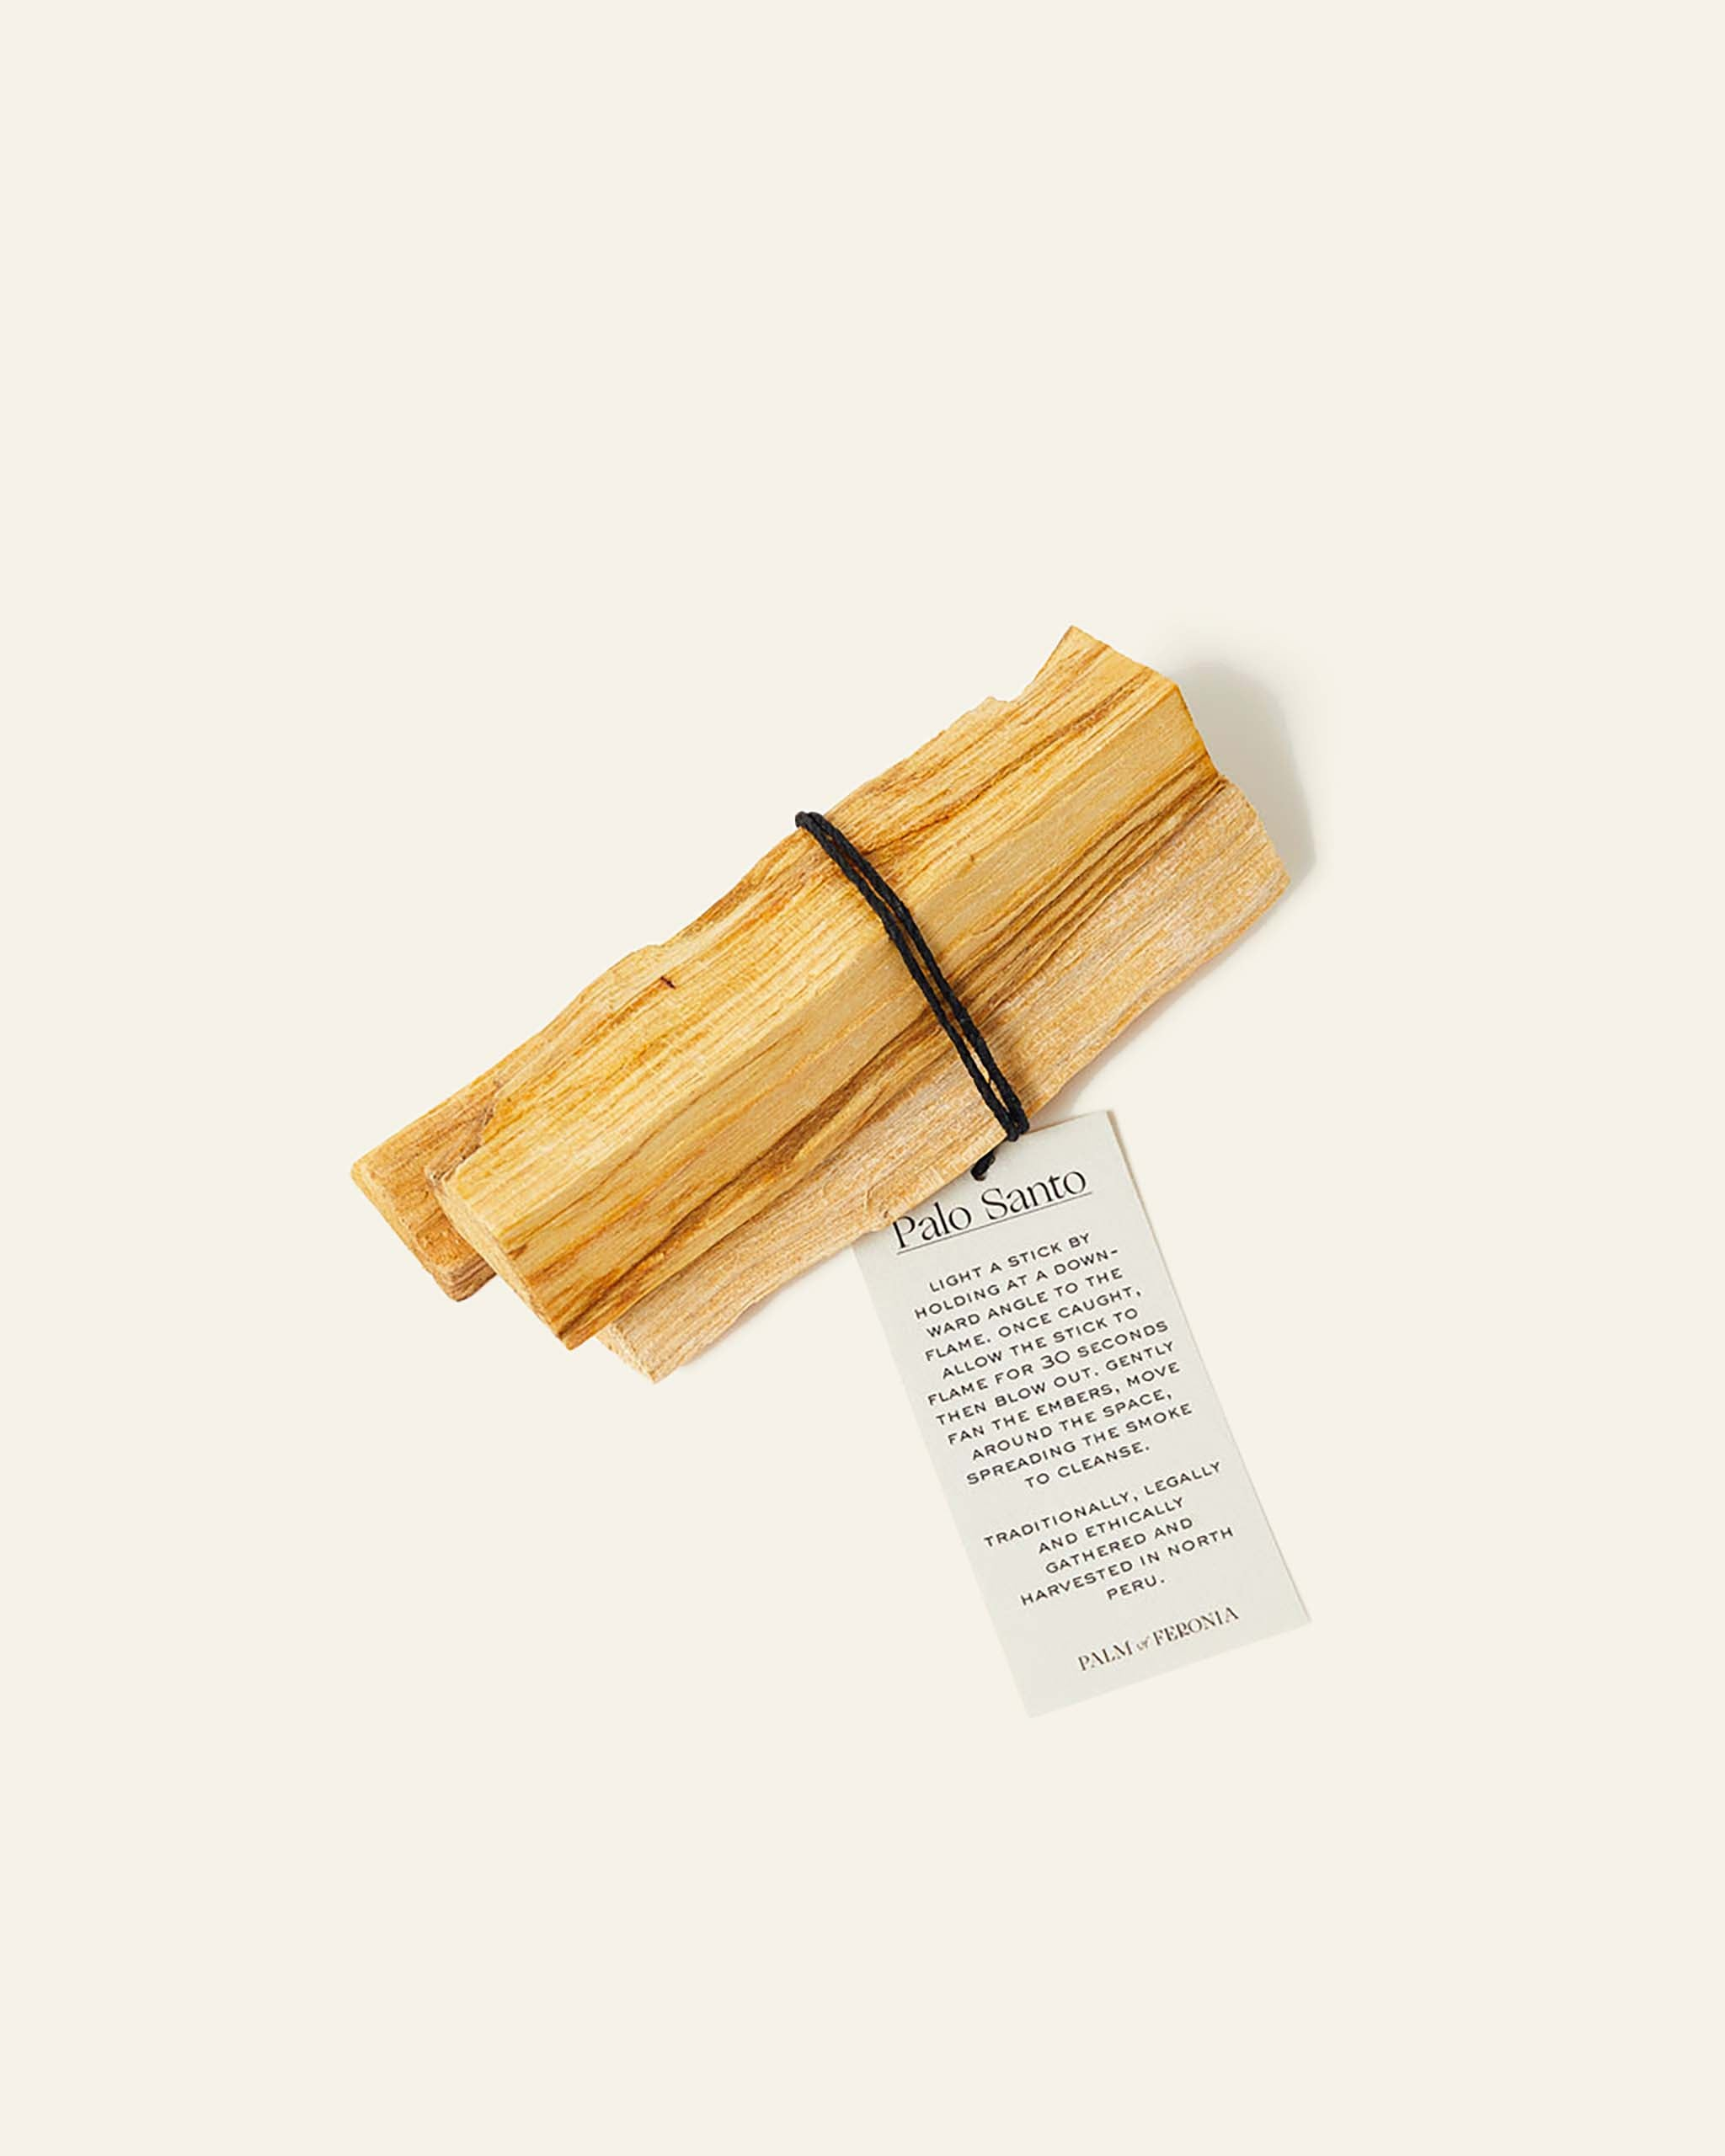 Fairtrade Palo Santo Incense Bundle.